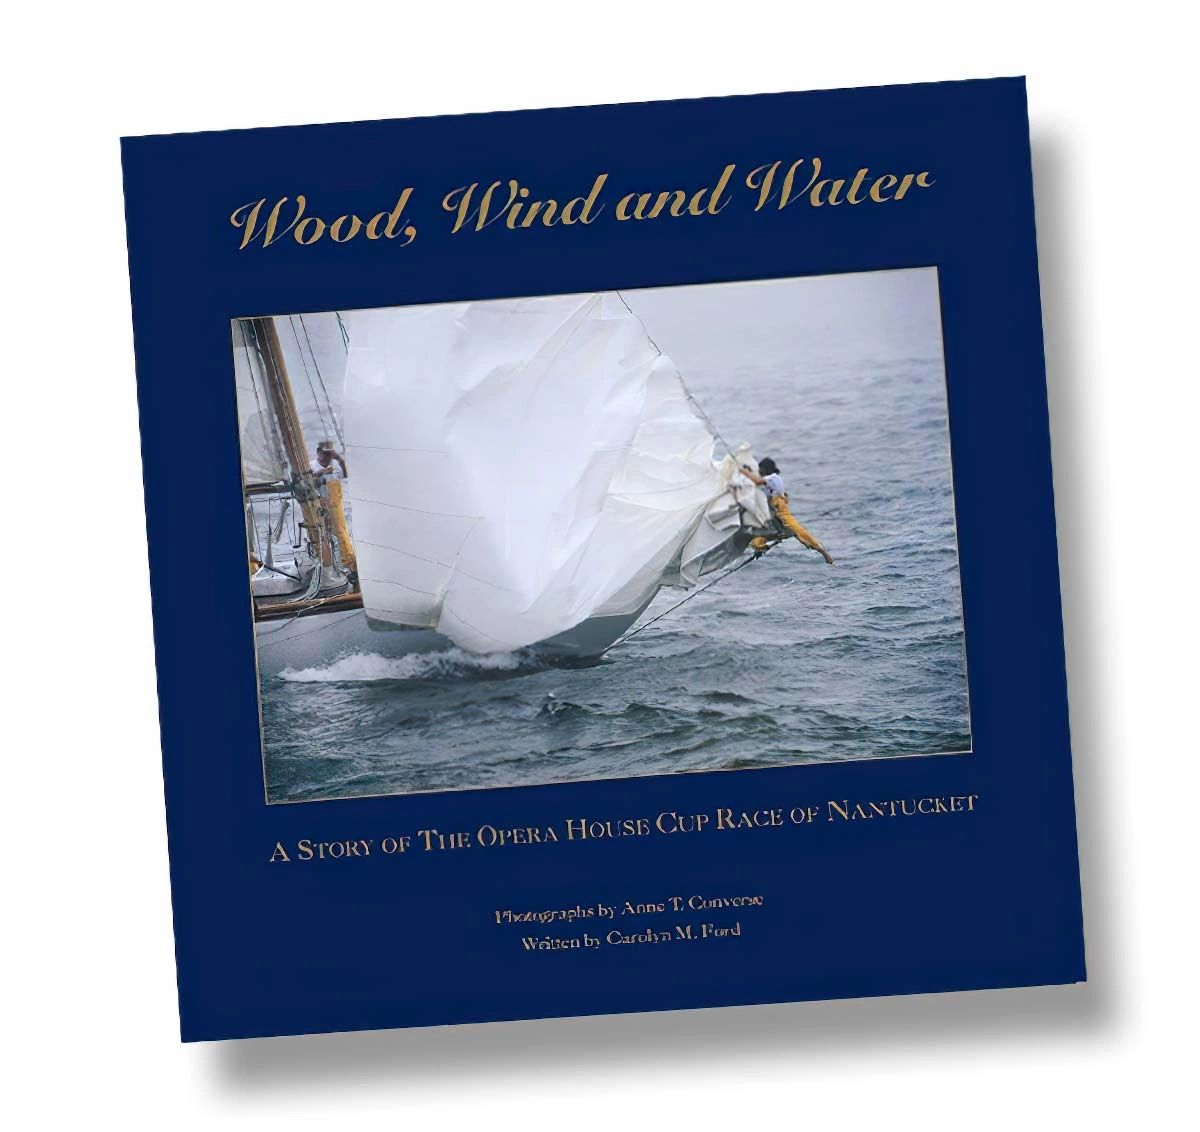 WOOD, WIND & WATER - A Story of the Opera House Race of Nantucket